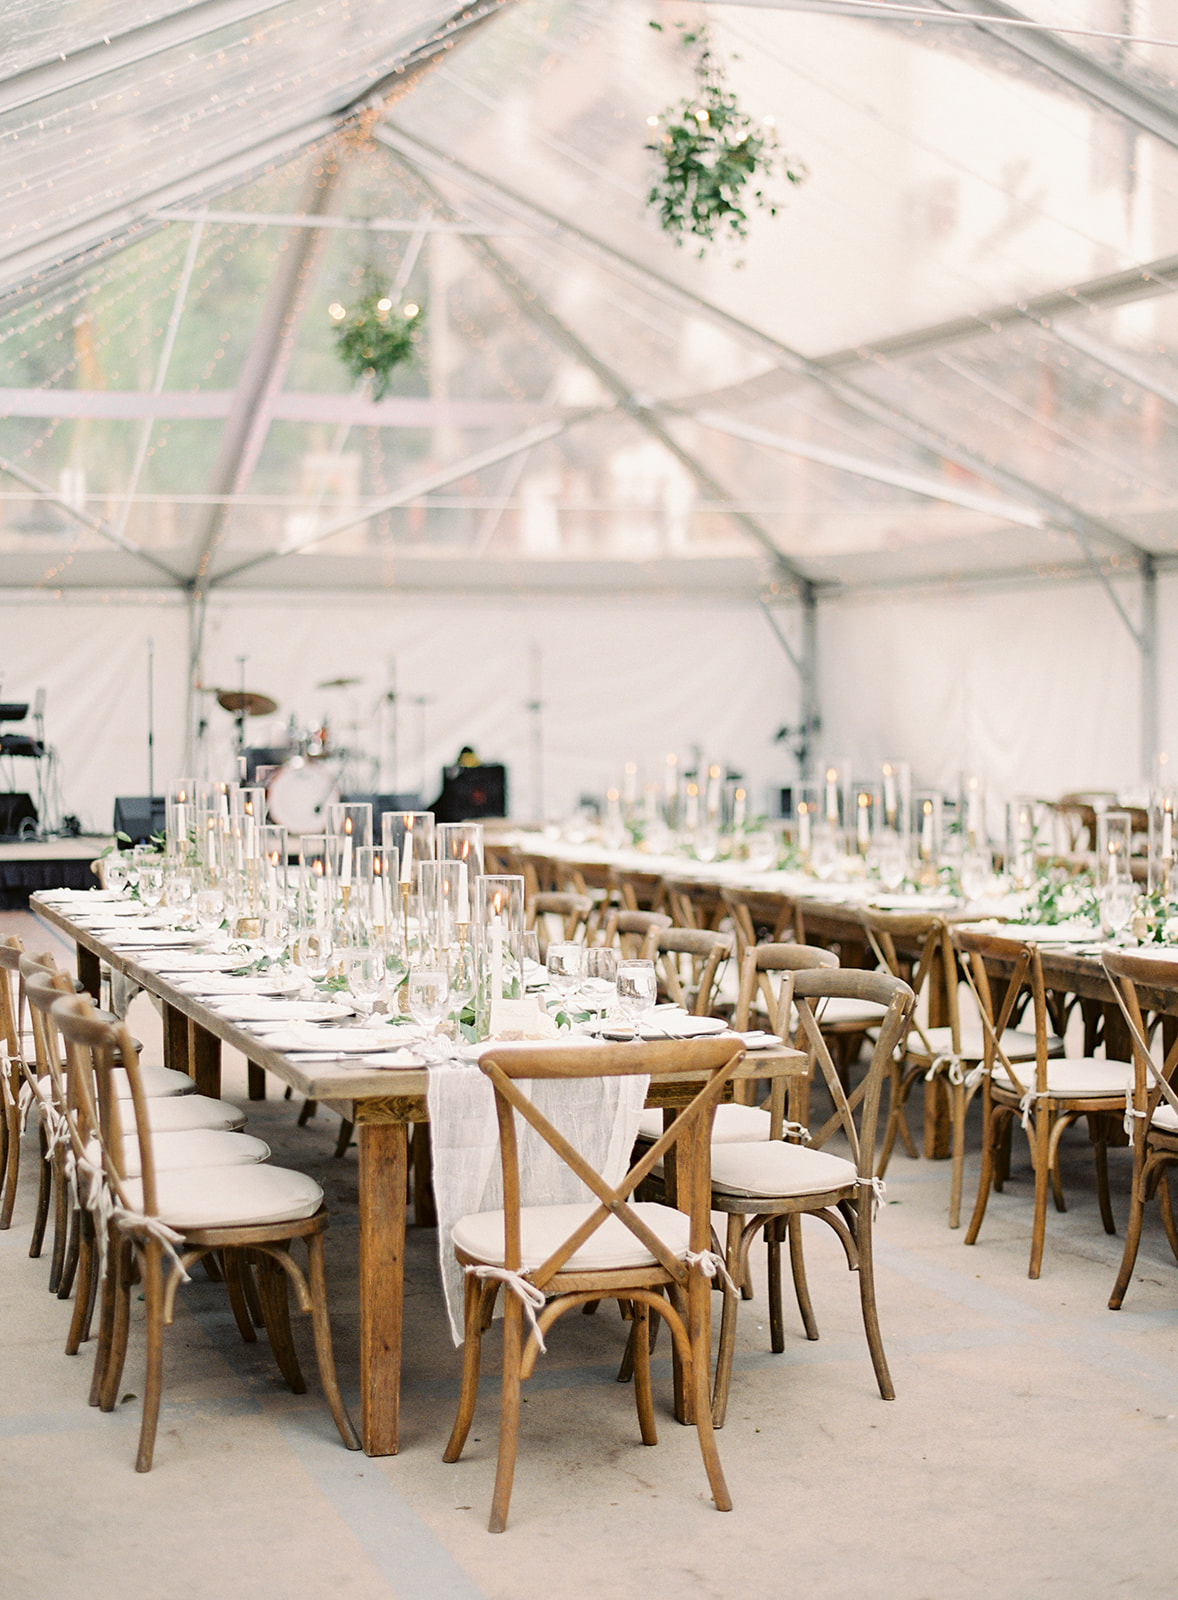 wedding reception tent greenery plus wooden tables